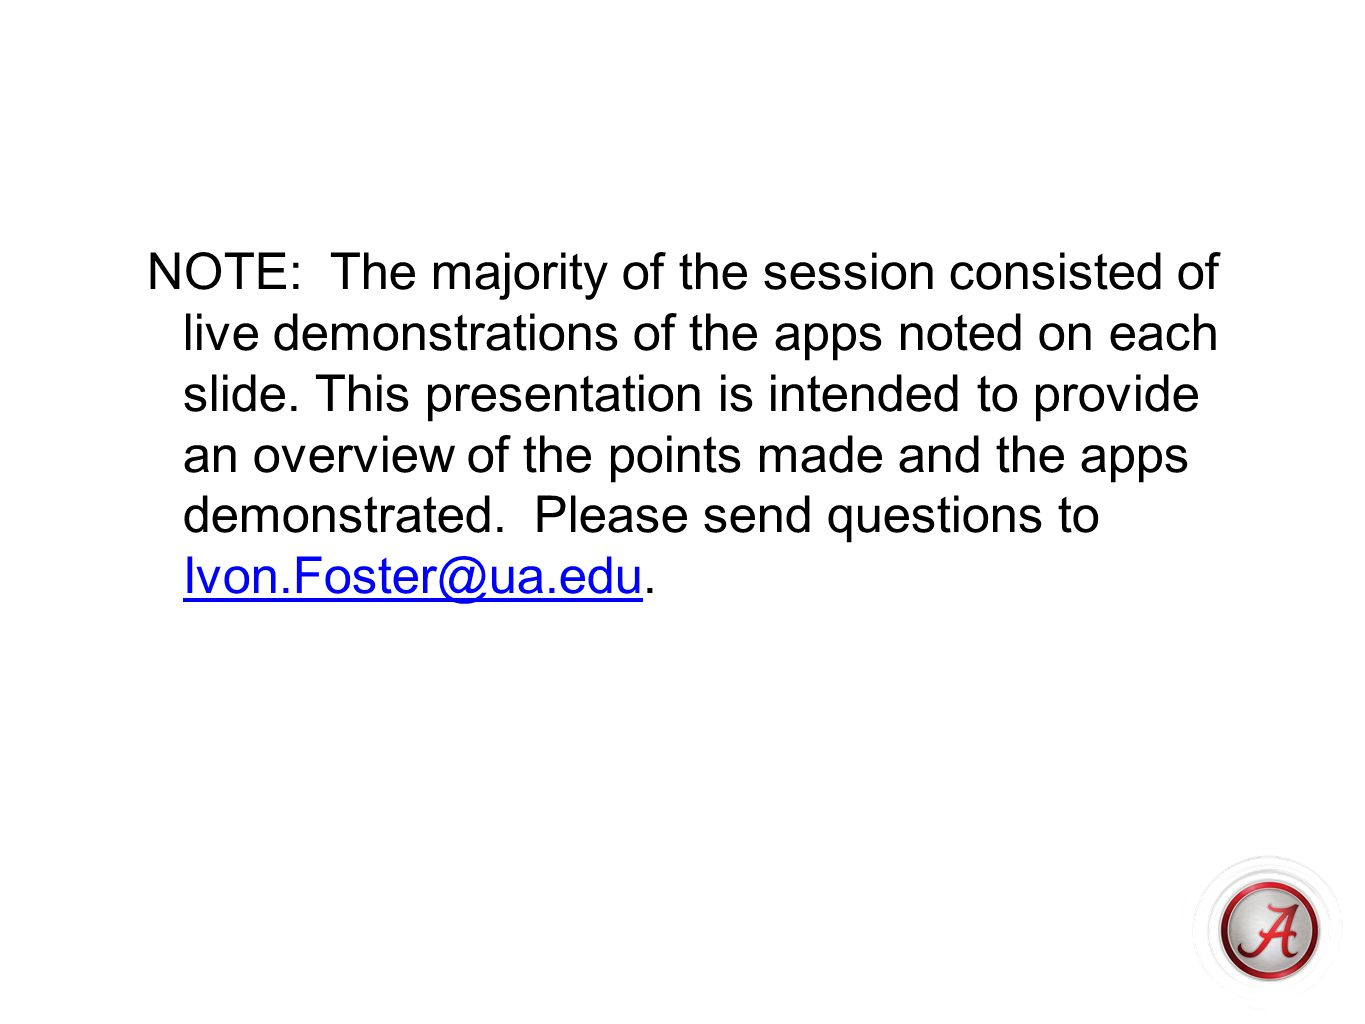 NOTE: The majority of the session consisted of live demonstrations of the apps noted on each slide.